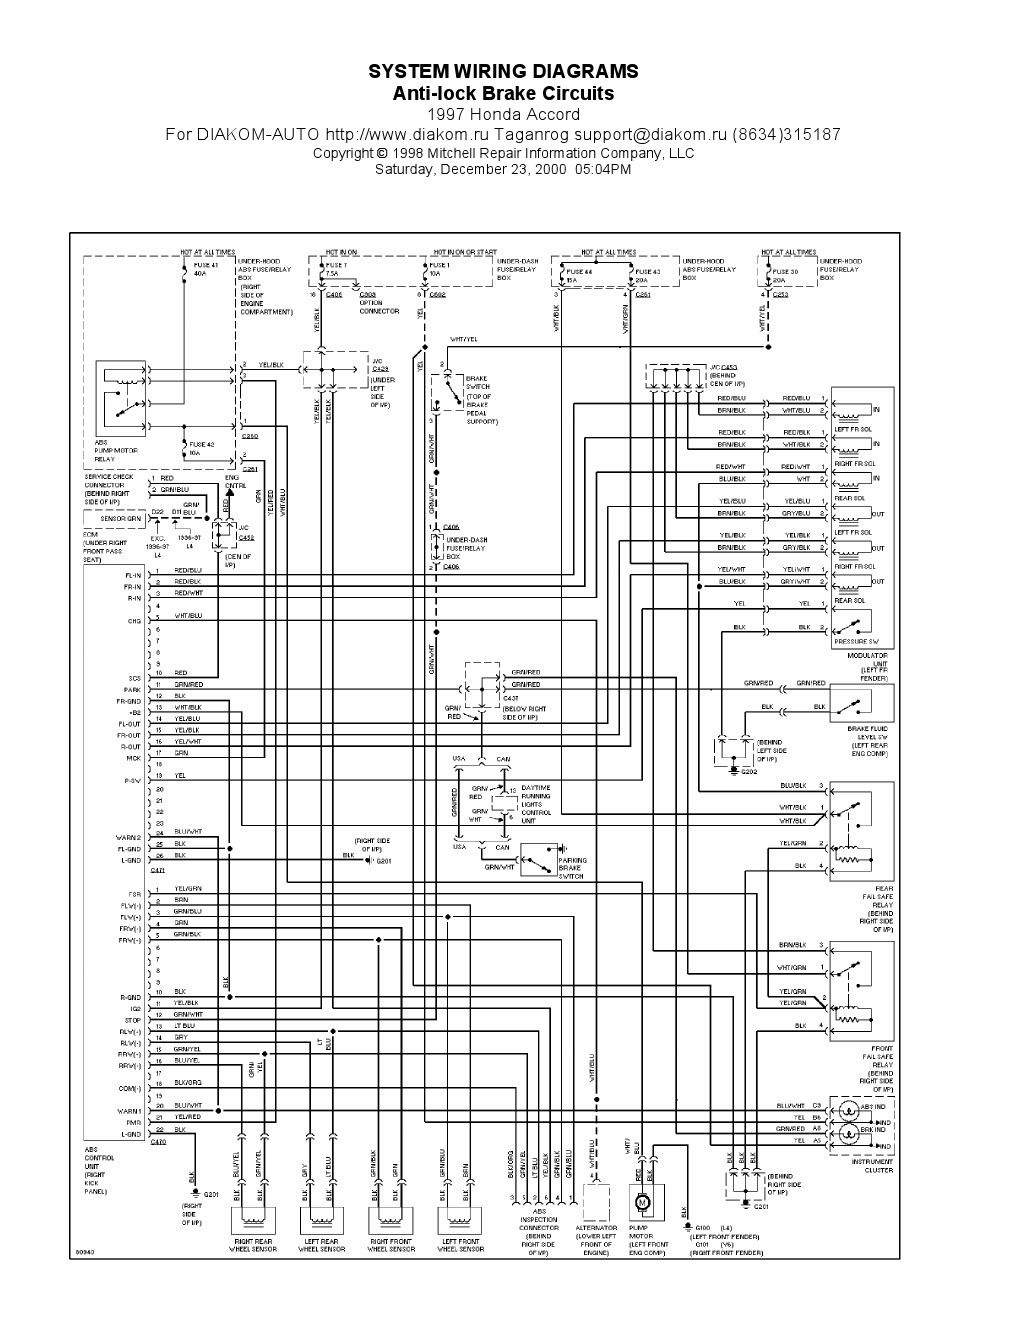 xi fuse box diagram 1991 fuel tank sending unit diagram